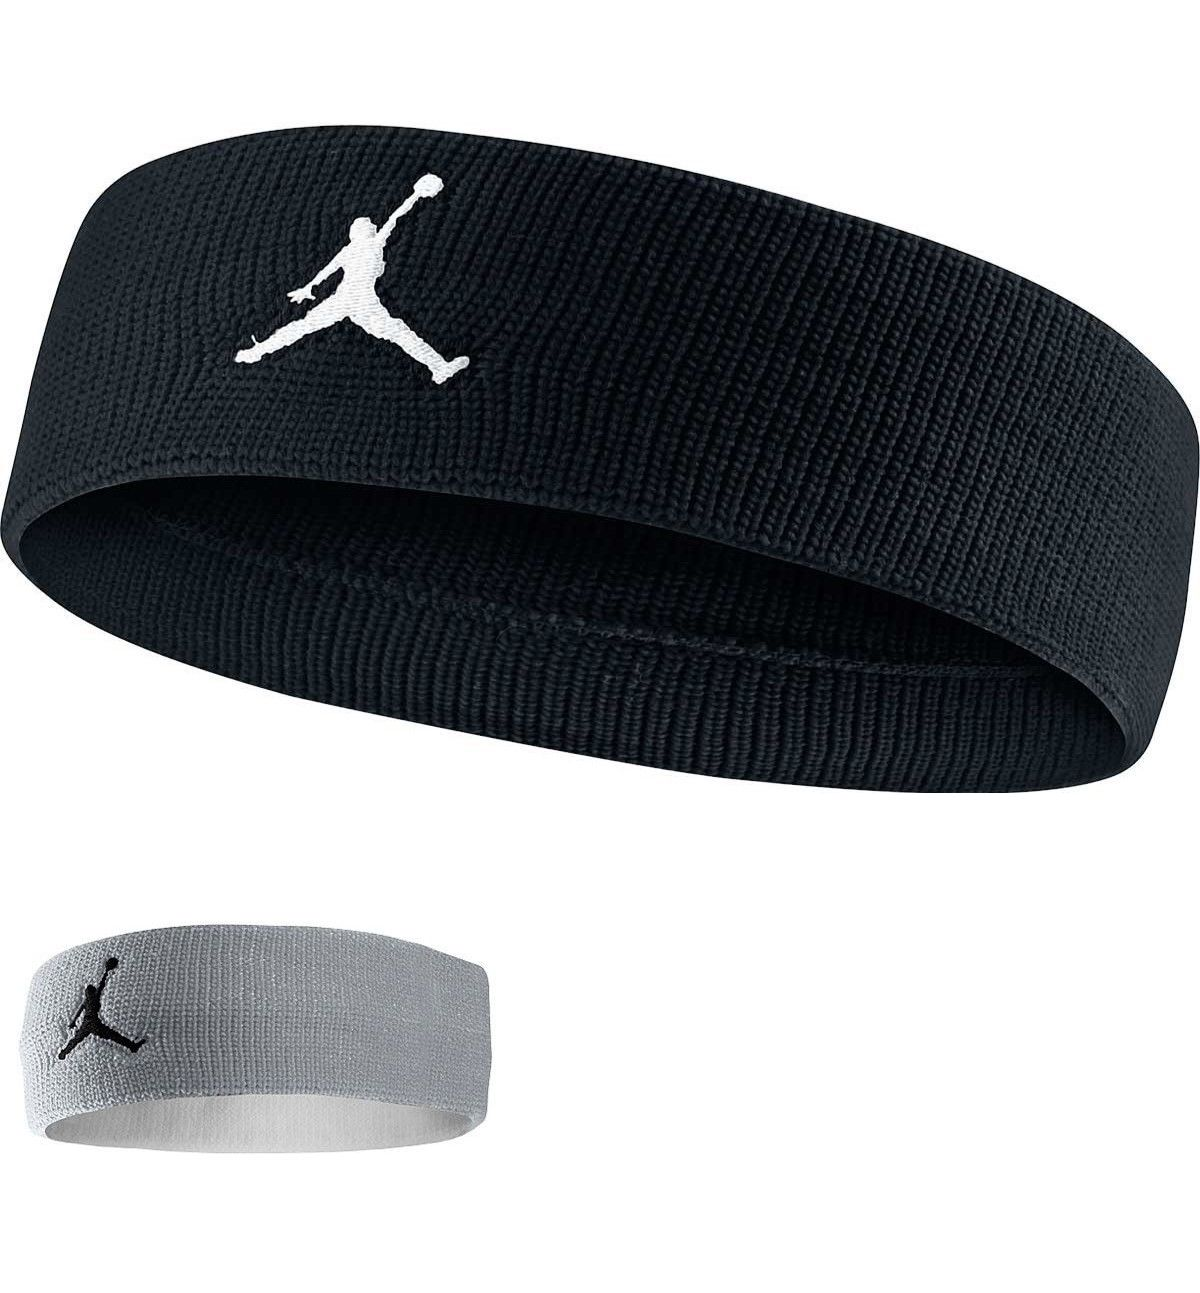 hot sale online 96ffa bb720 Basketball 21194  Nike Jordan Headband Basketball One Size Jumpman Unisex  Black Gray Color -  BUY IT NOW ONLY   11.99 on eBay!